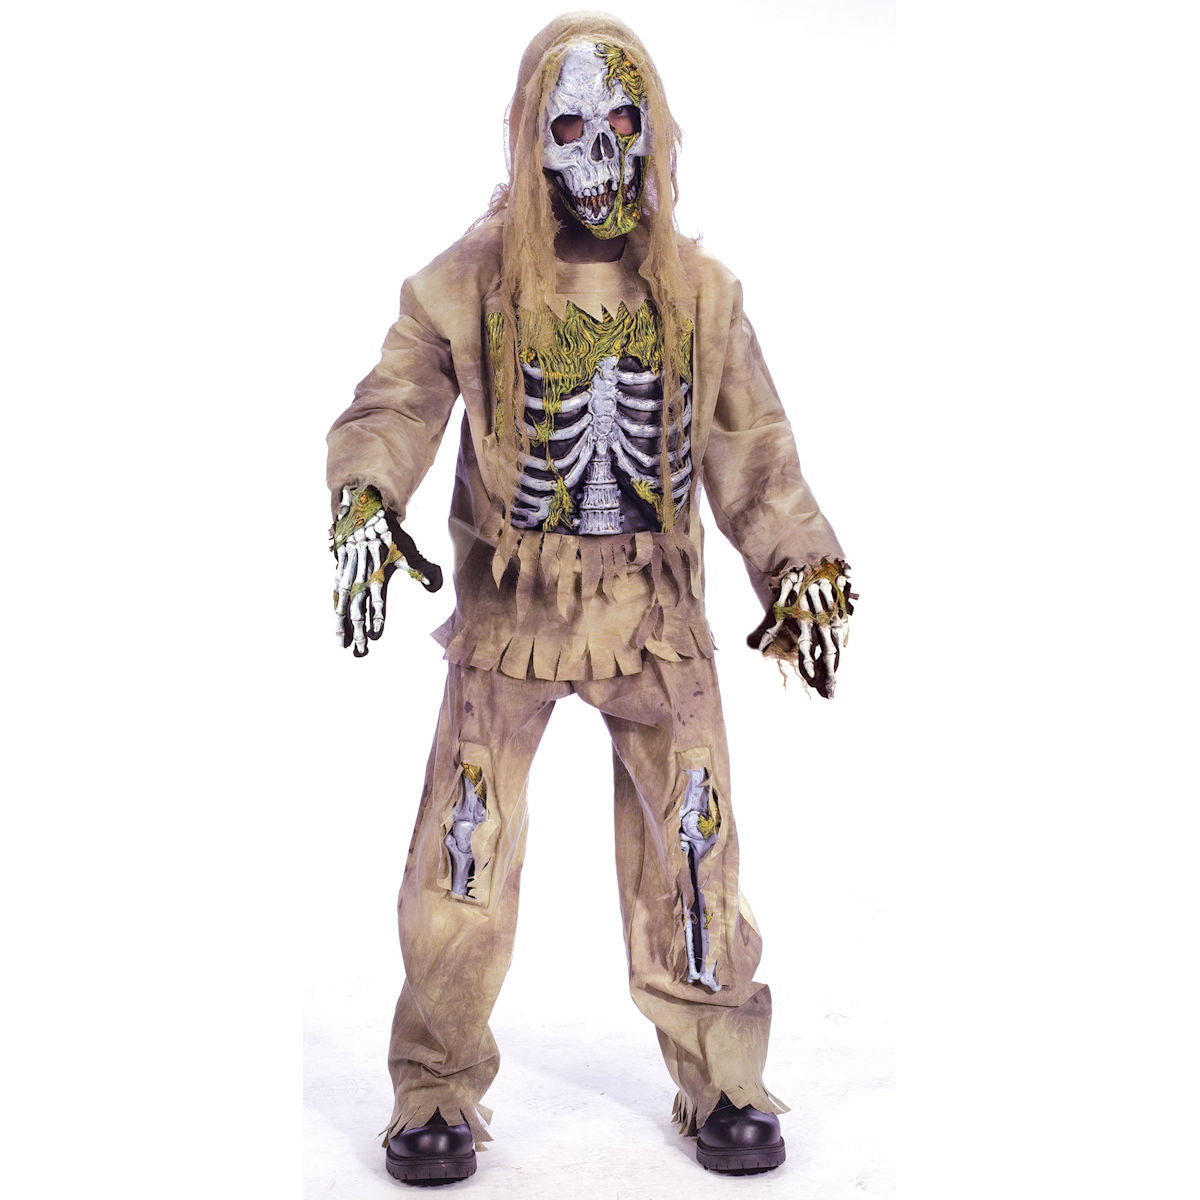 3D Skeleton Zombie Deluxe Boy's Halloween Costume with Mask